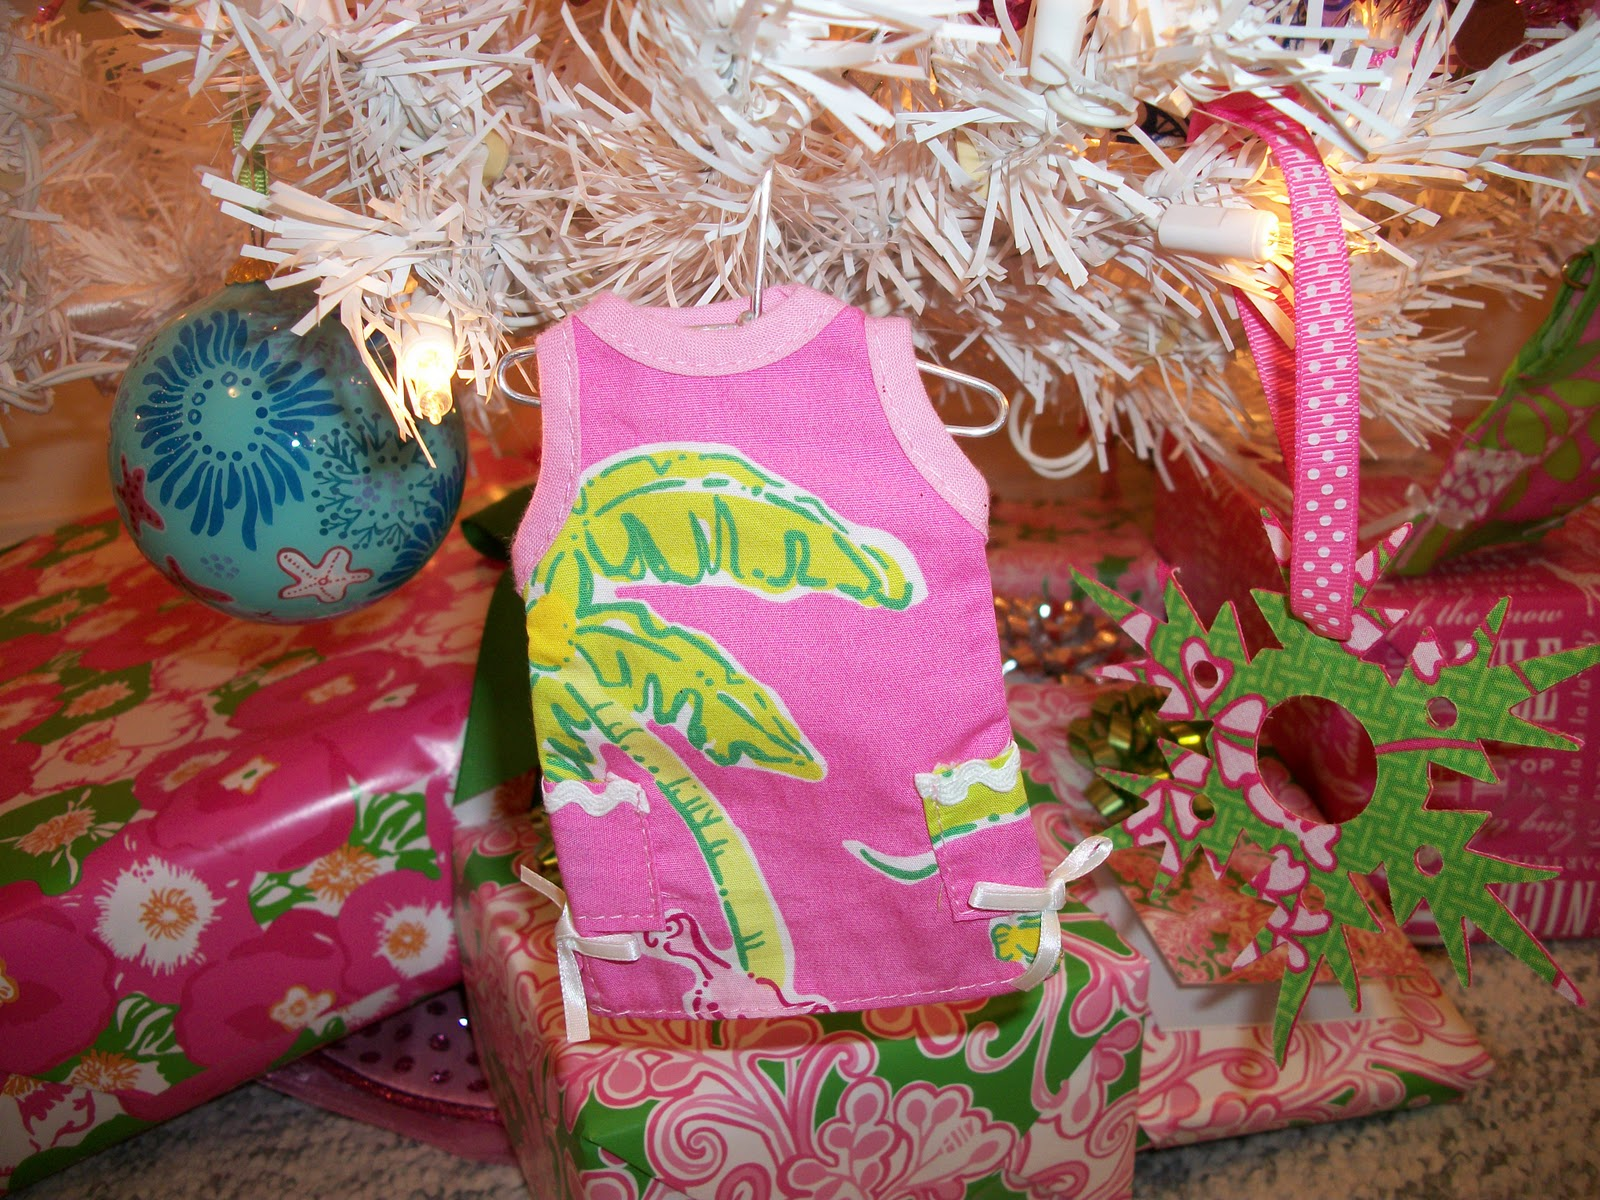 Two More Trees Lilly Pulitzer Amp Football Themes